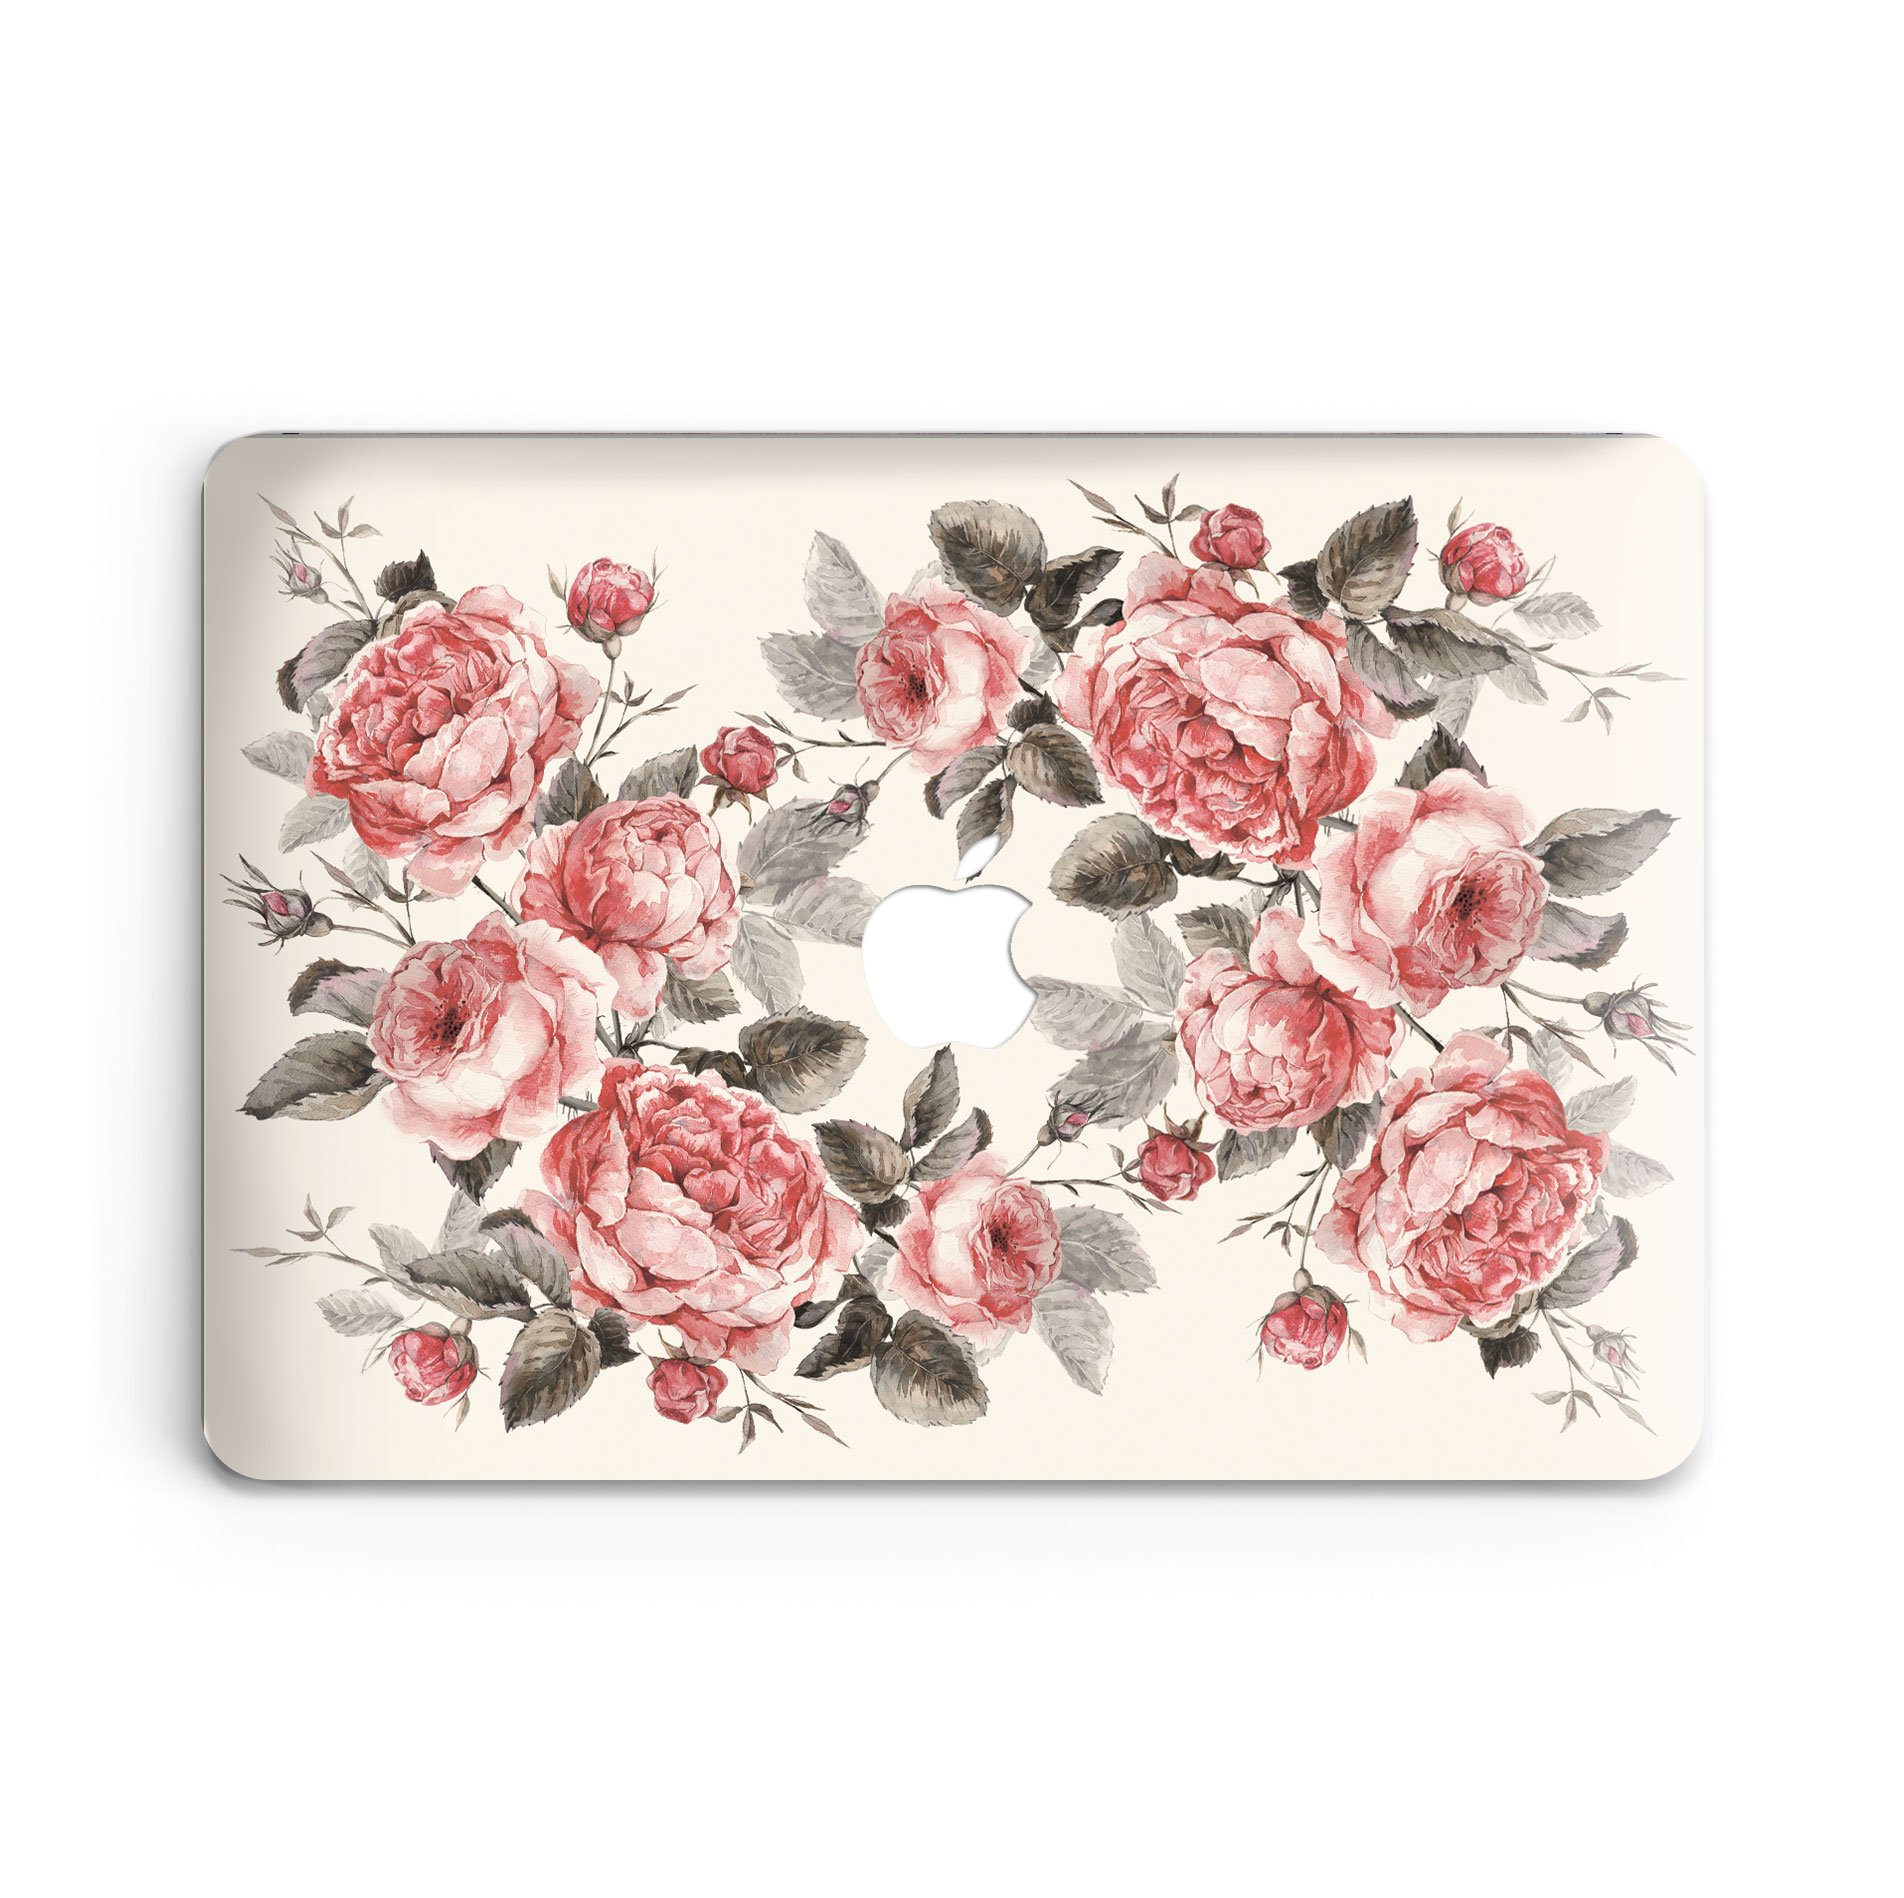 GoodMoodCases Plastic Hard Case Cover for MacBook 12-inch 2015-2016 (A1534 & MLHC2) with Retina Display - Pink Roses